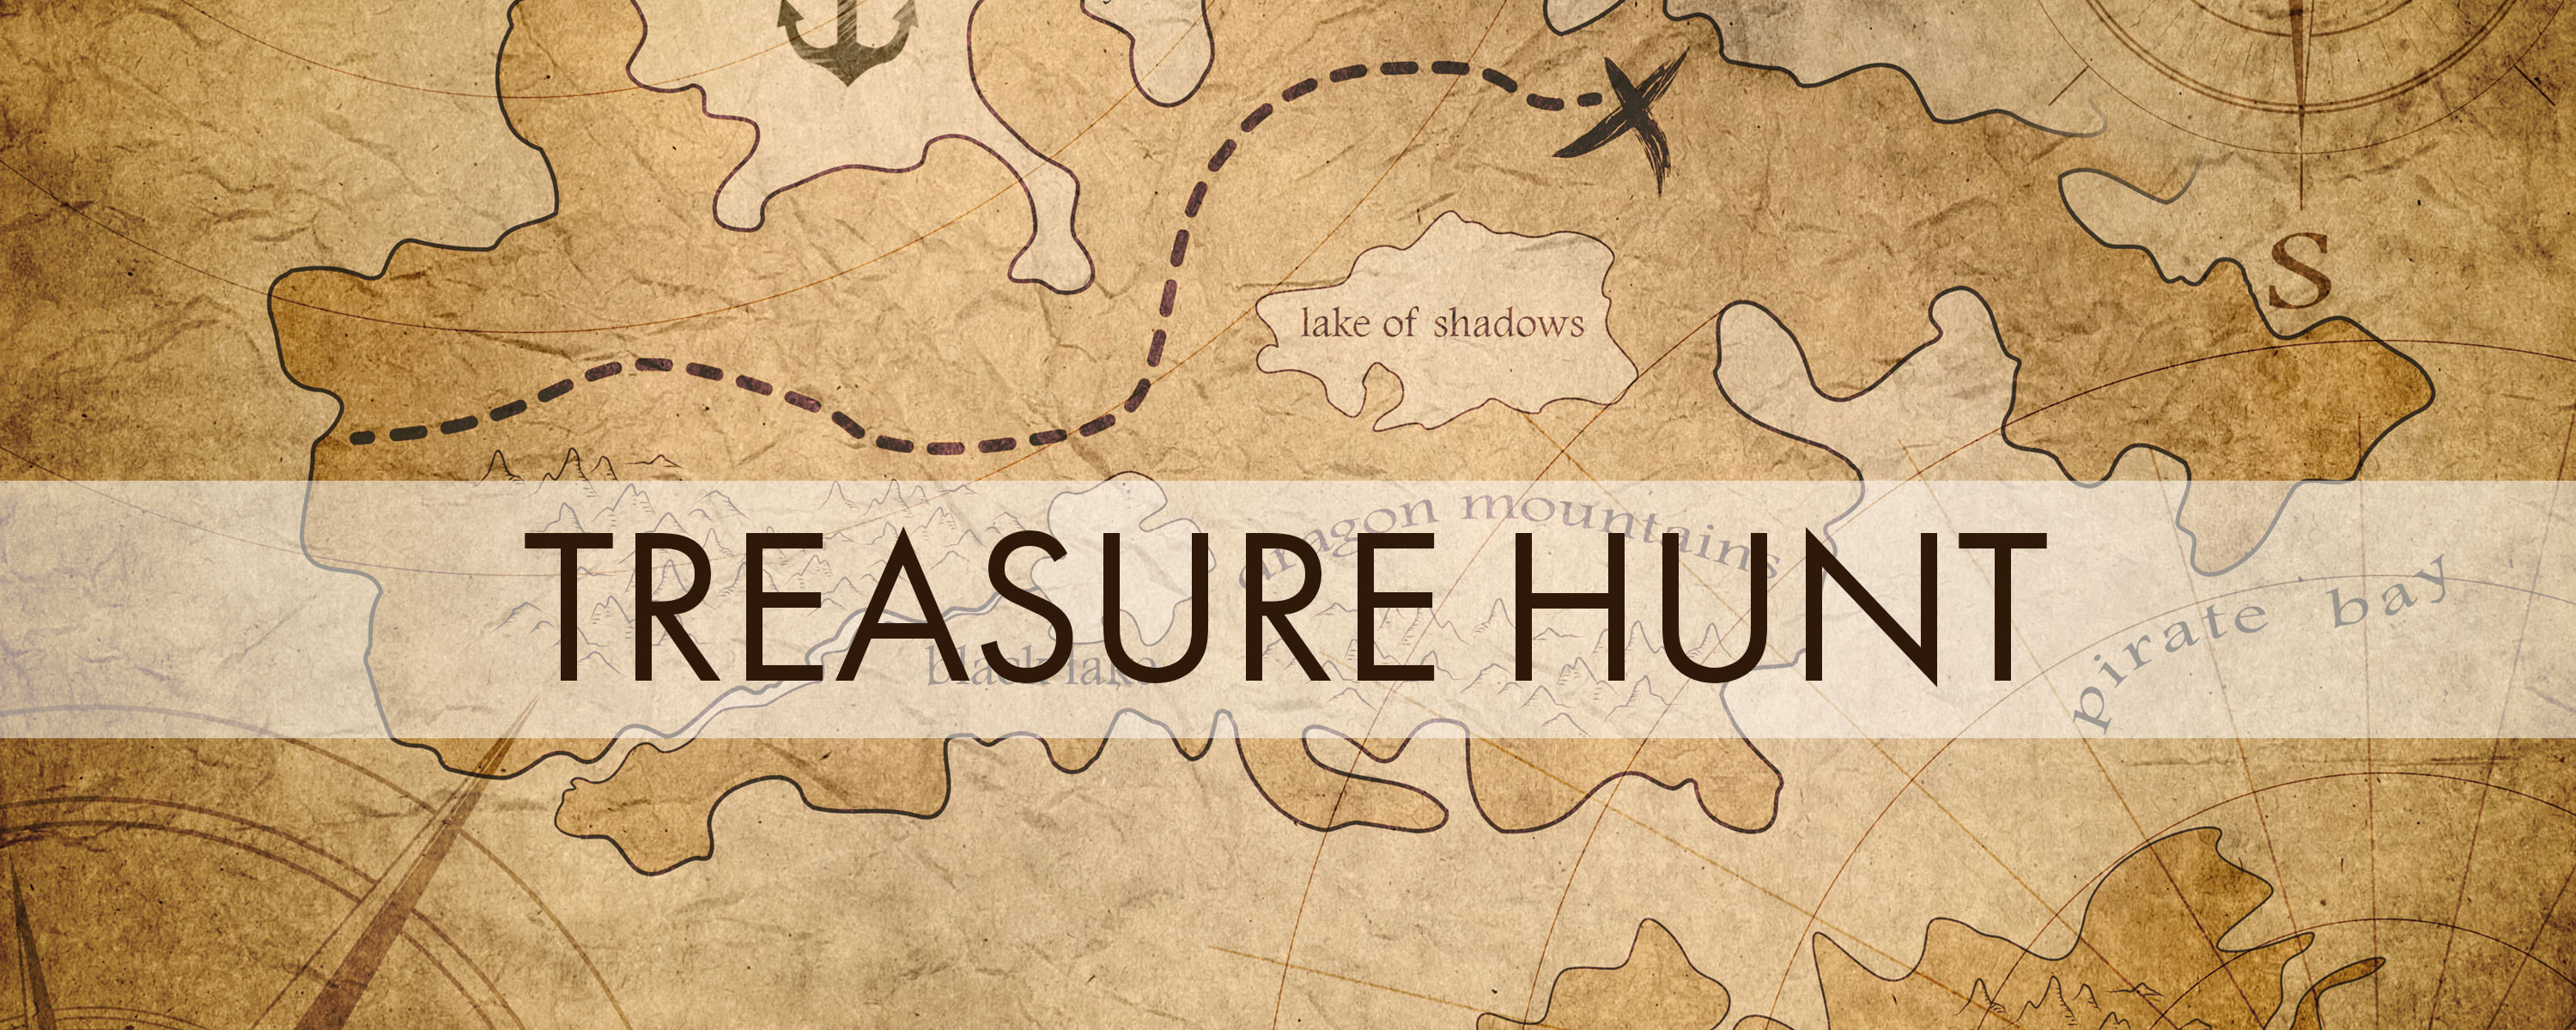 Social Media Treasure Hunt Results